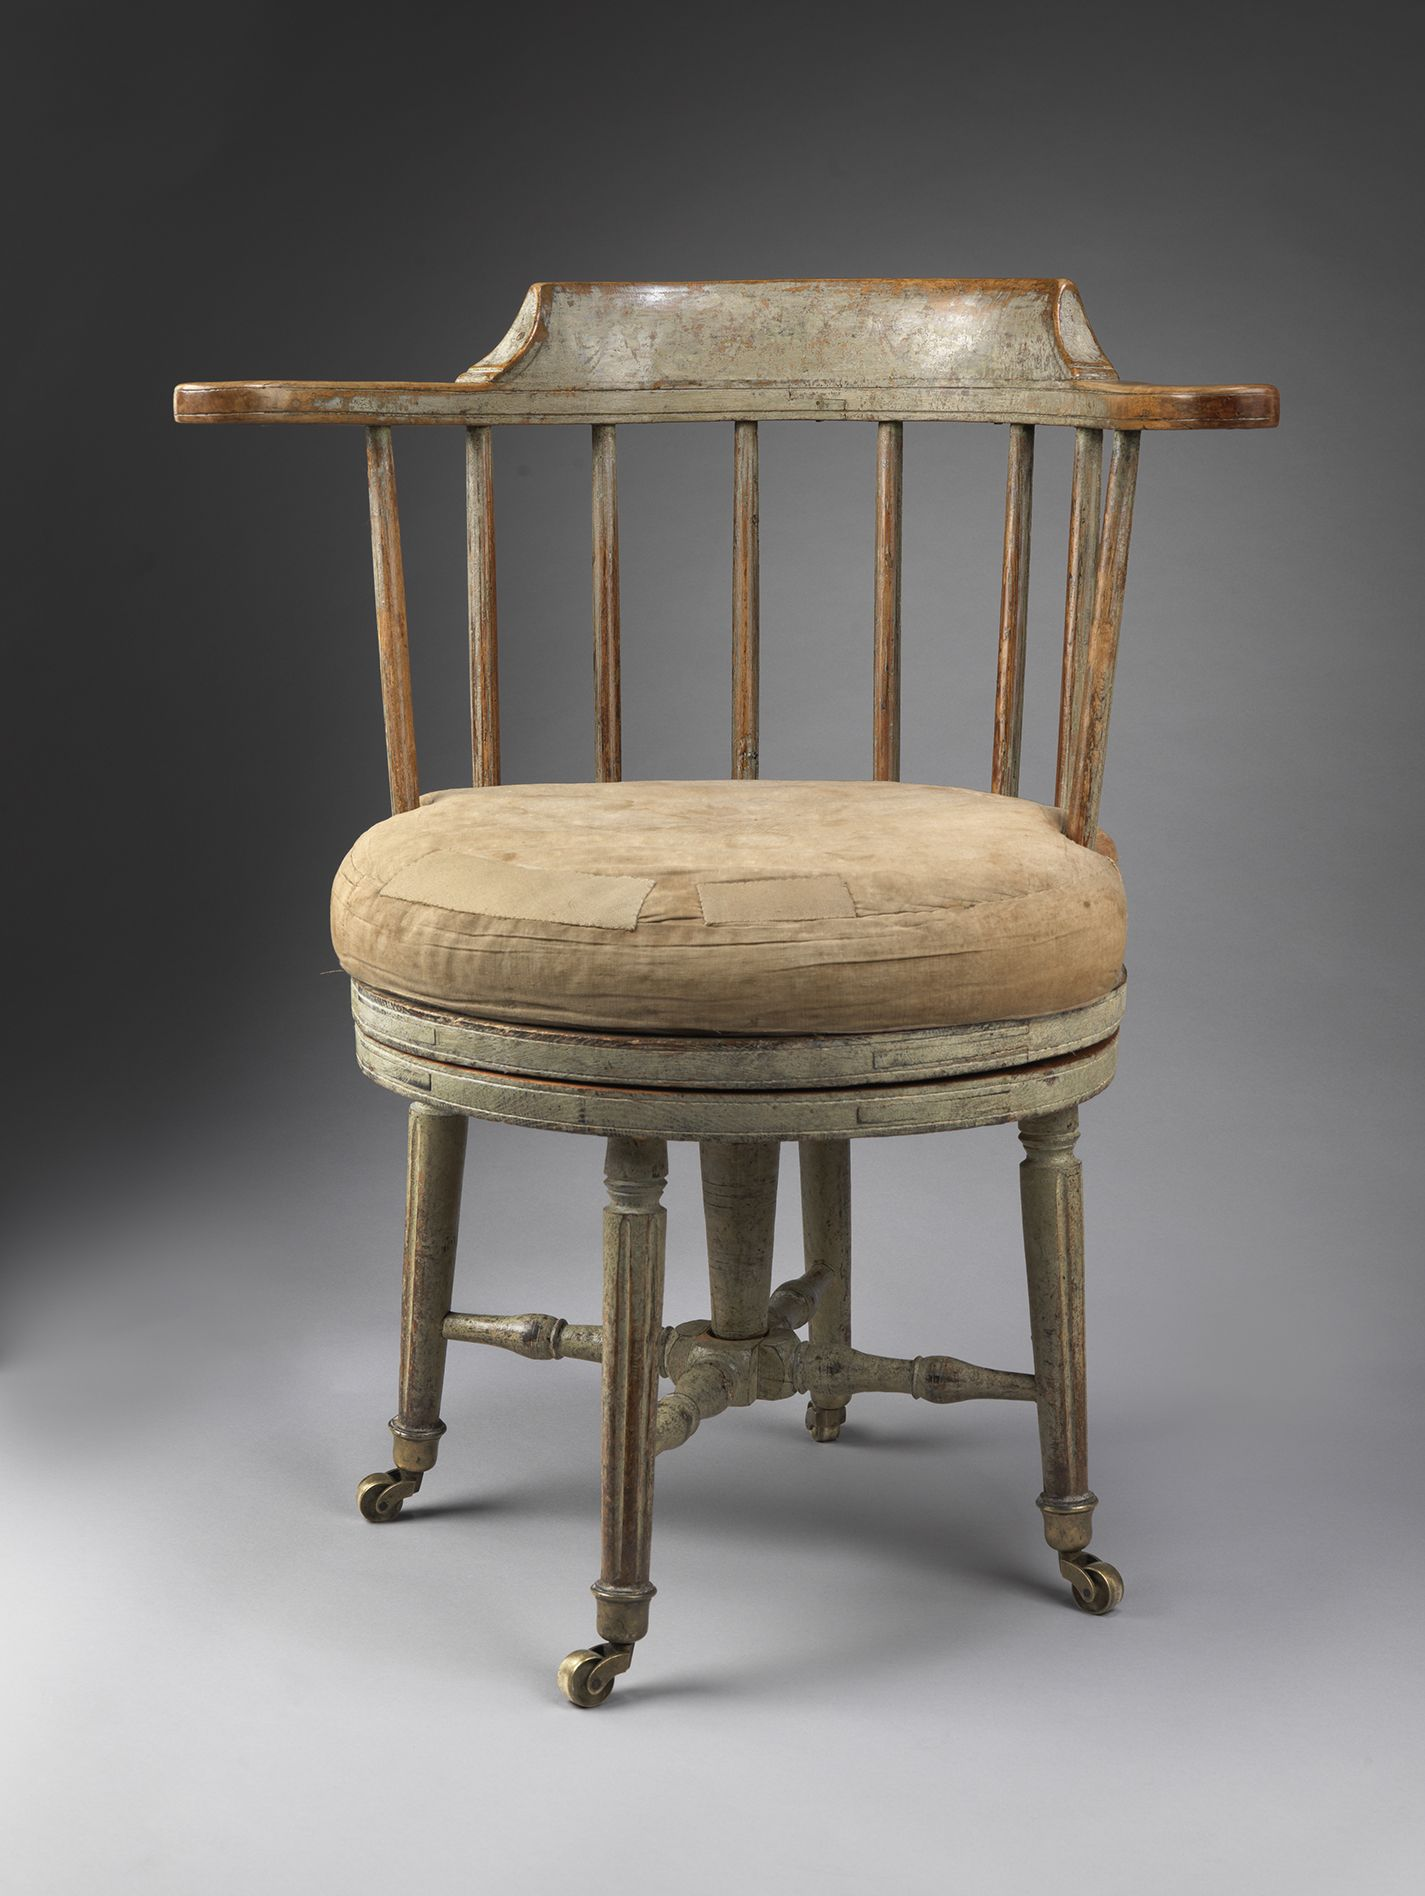 Remarkable antique office chair Swivel Chair Robert Young Antiques Collection Remarkable Gustavian Period Revolving Desk Chair Turned And Carved Alder Wood Retaining Much Original Paint Pinterest Robert Young Antiques Collection Remarkable Gustavian Period